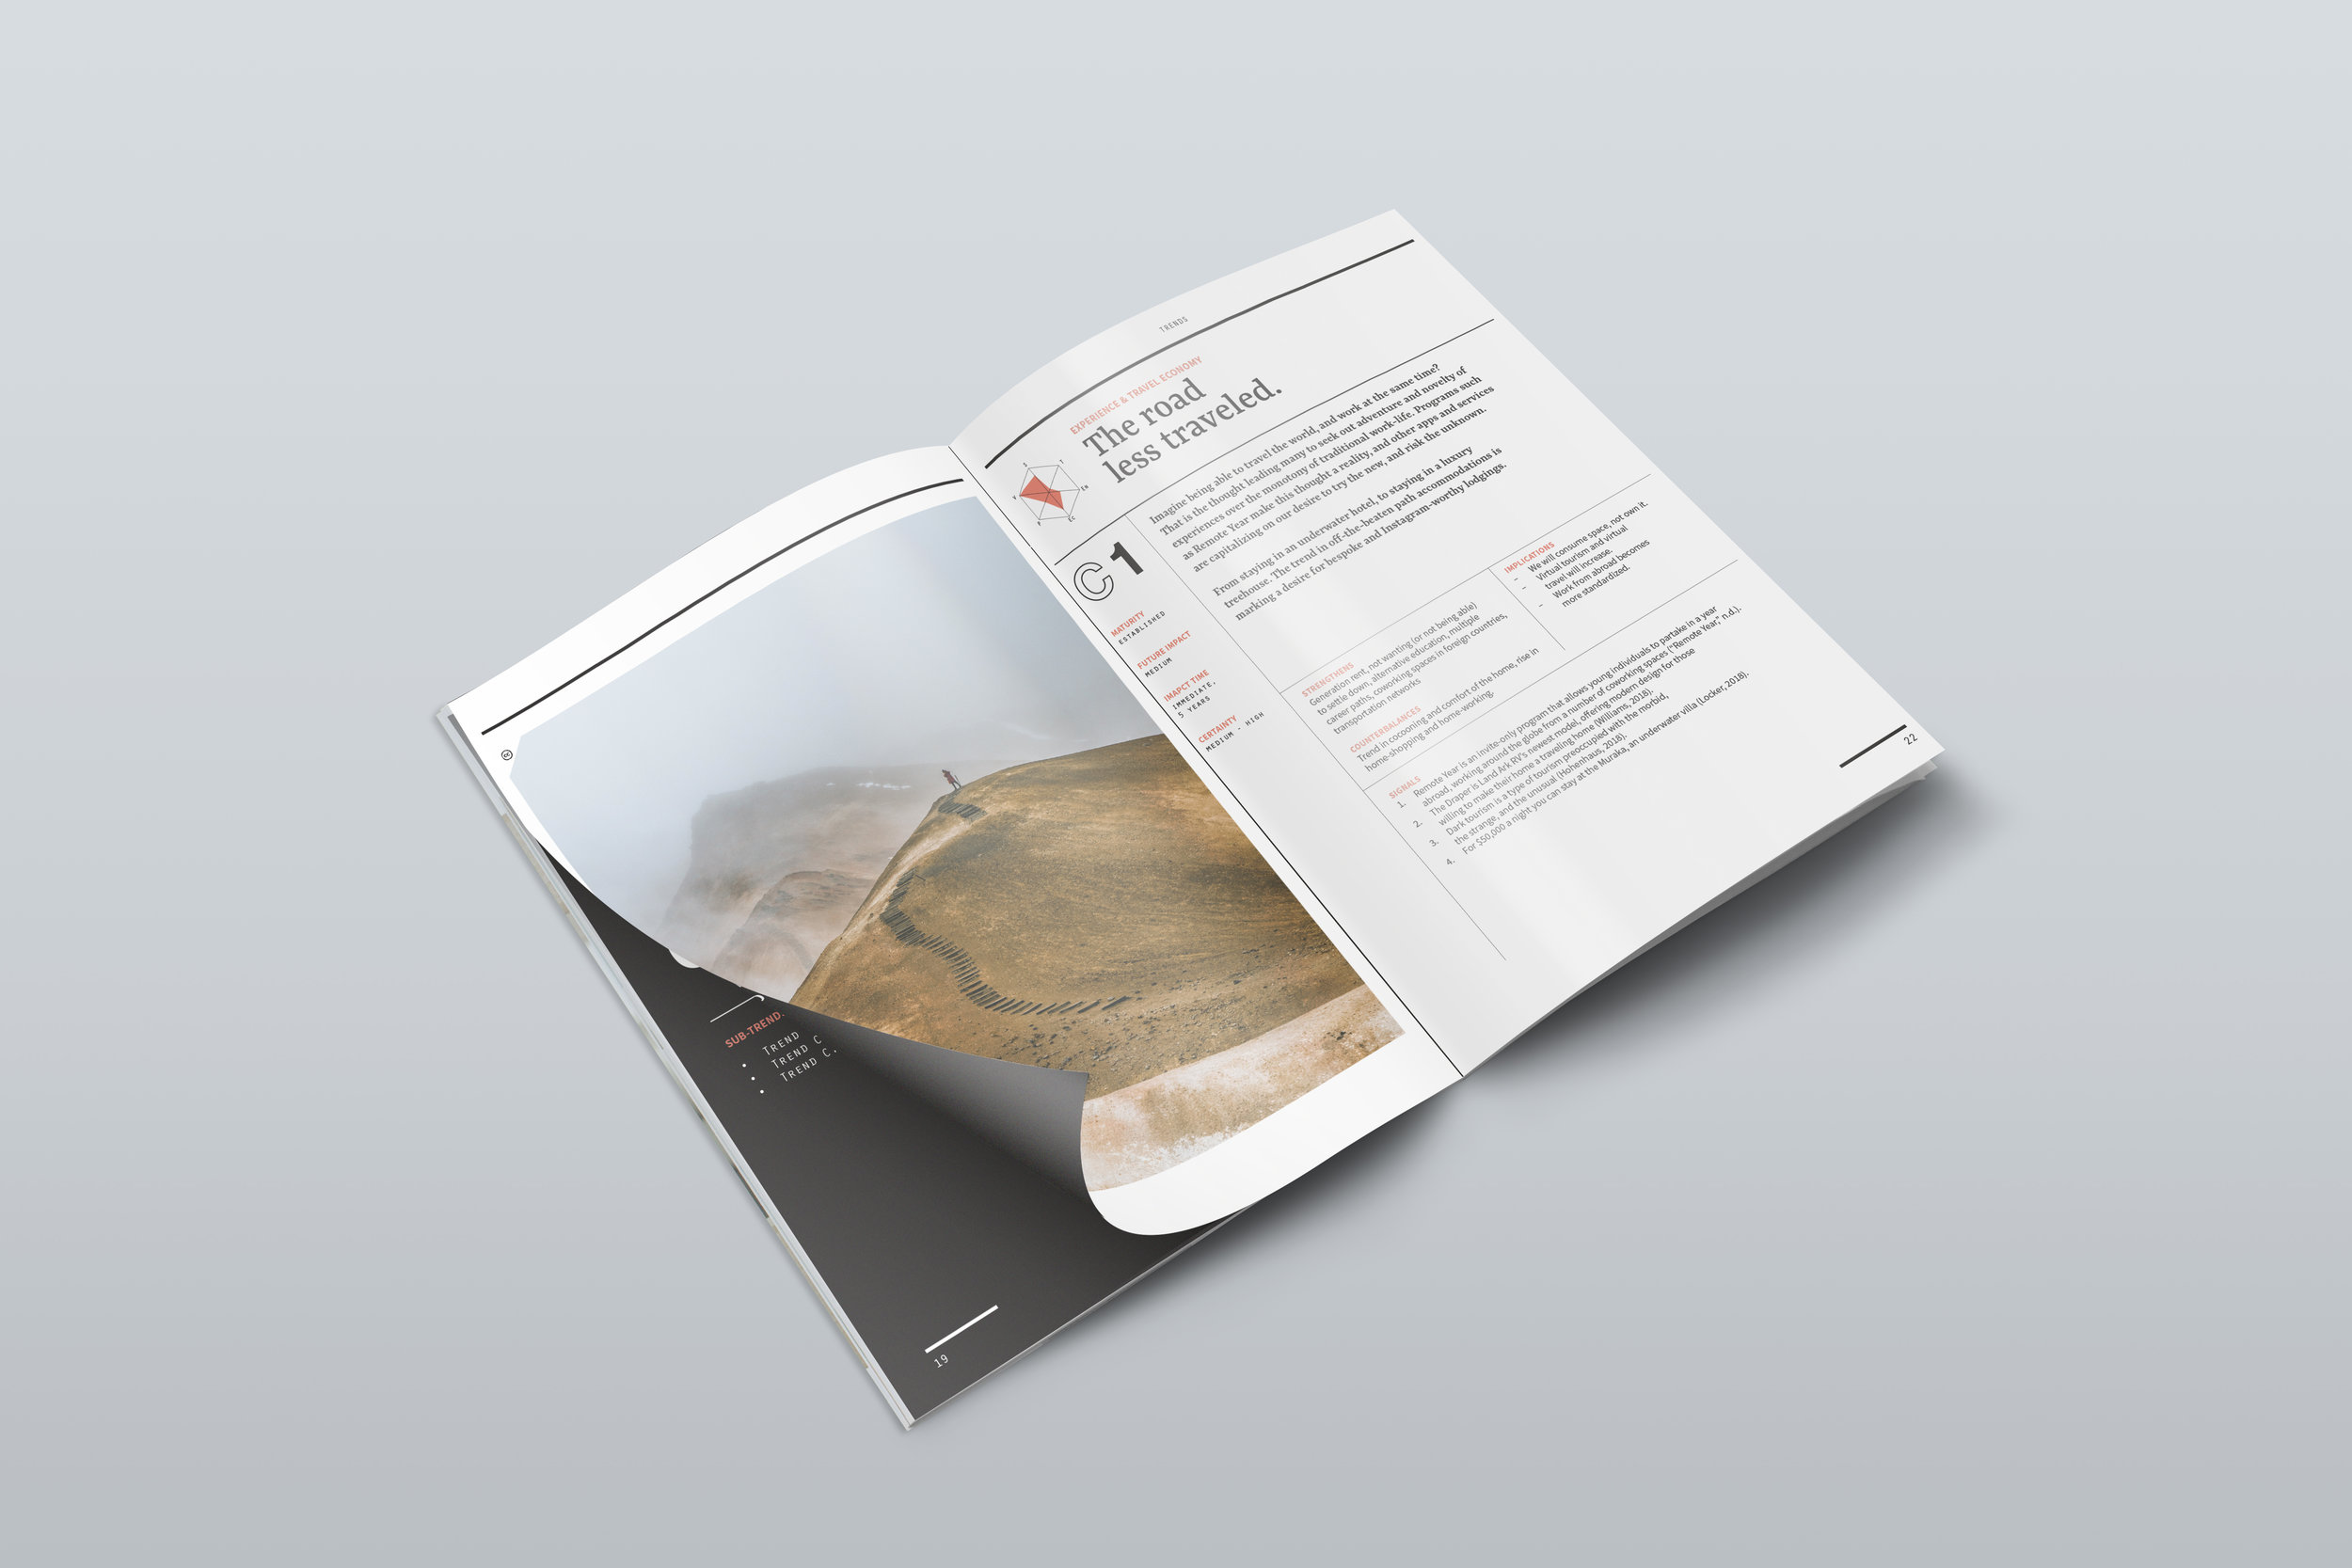 Trends booklet - This booklet takes a look at key trends actively shaping the future world of work, workers, and workplaces. They are organized according to their macro-trends (drivers of change).Find it here.